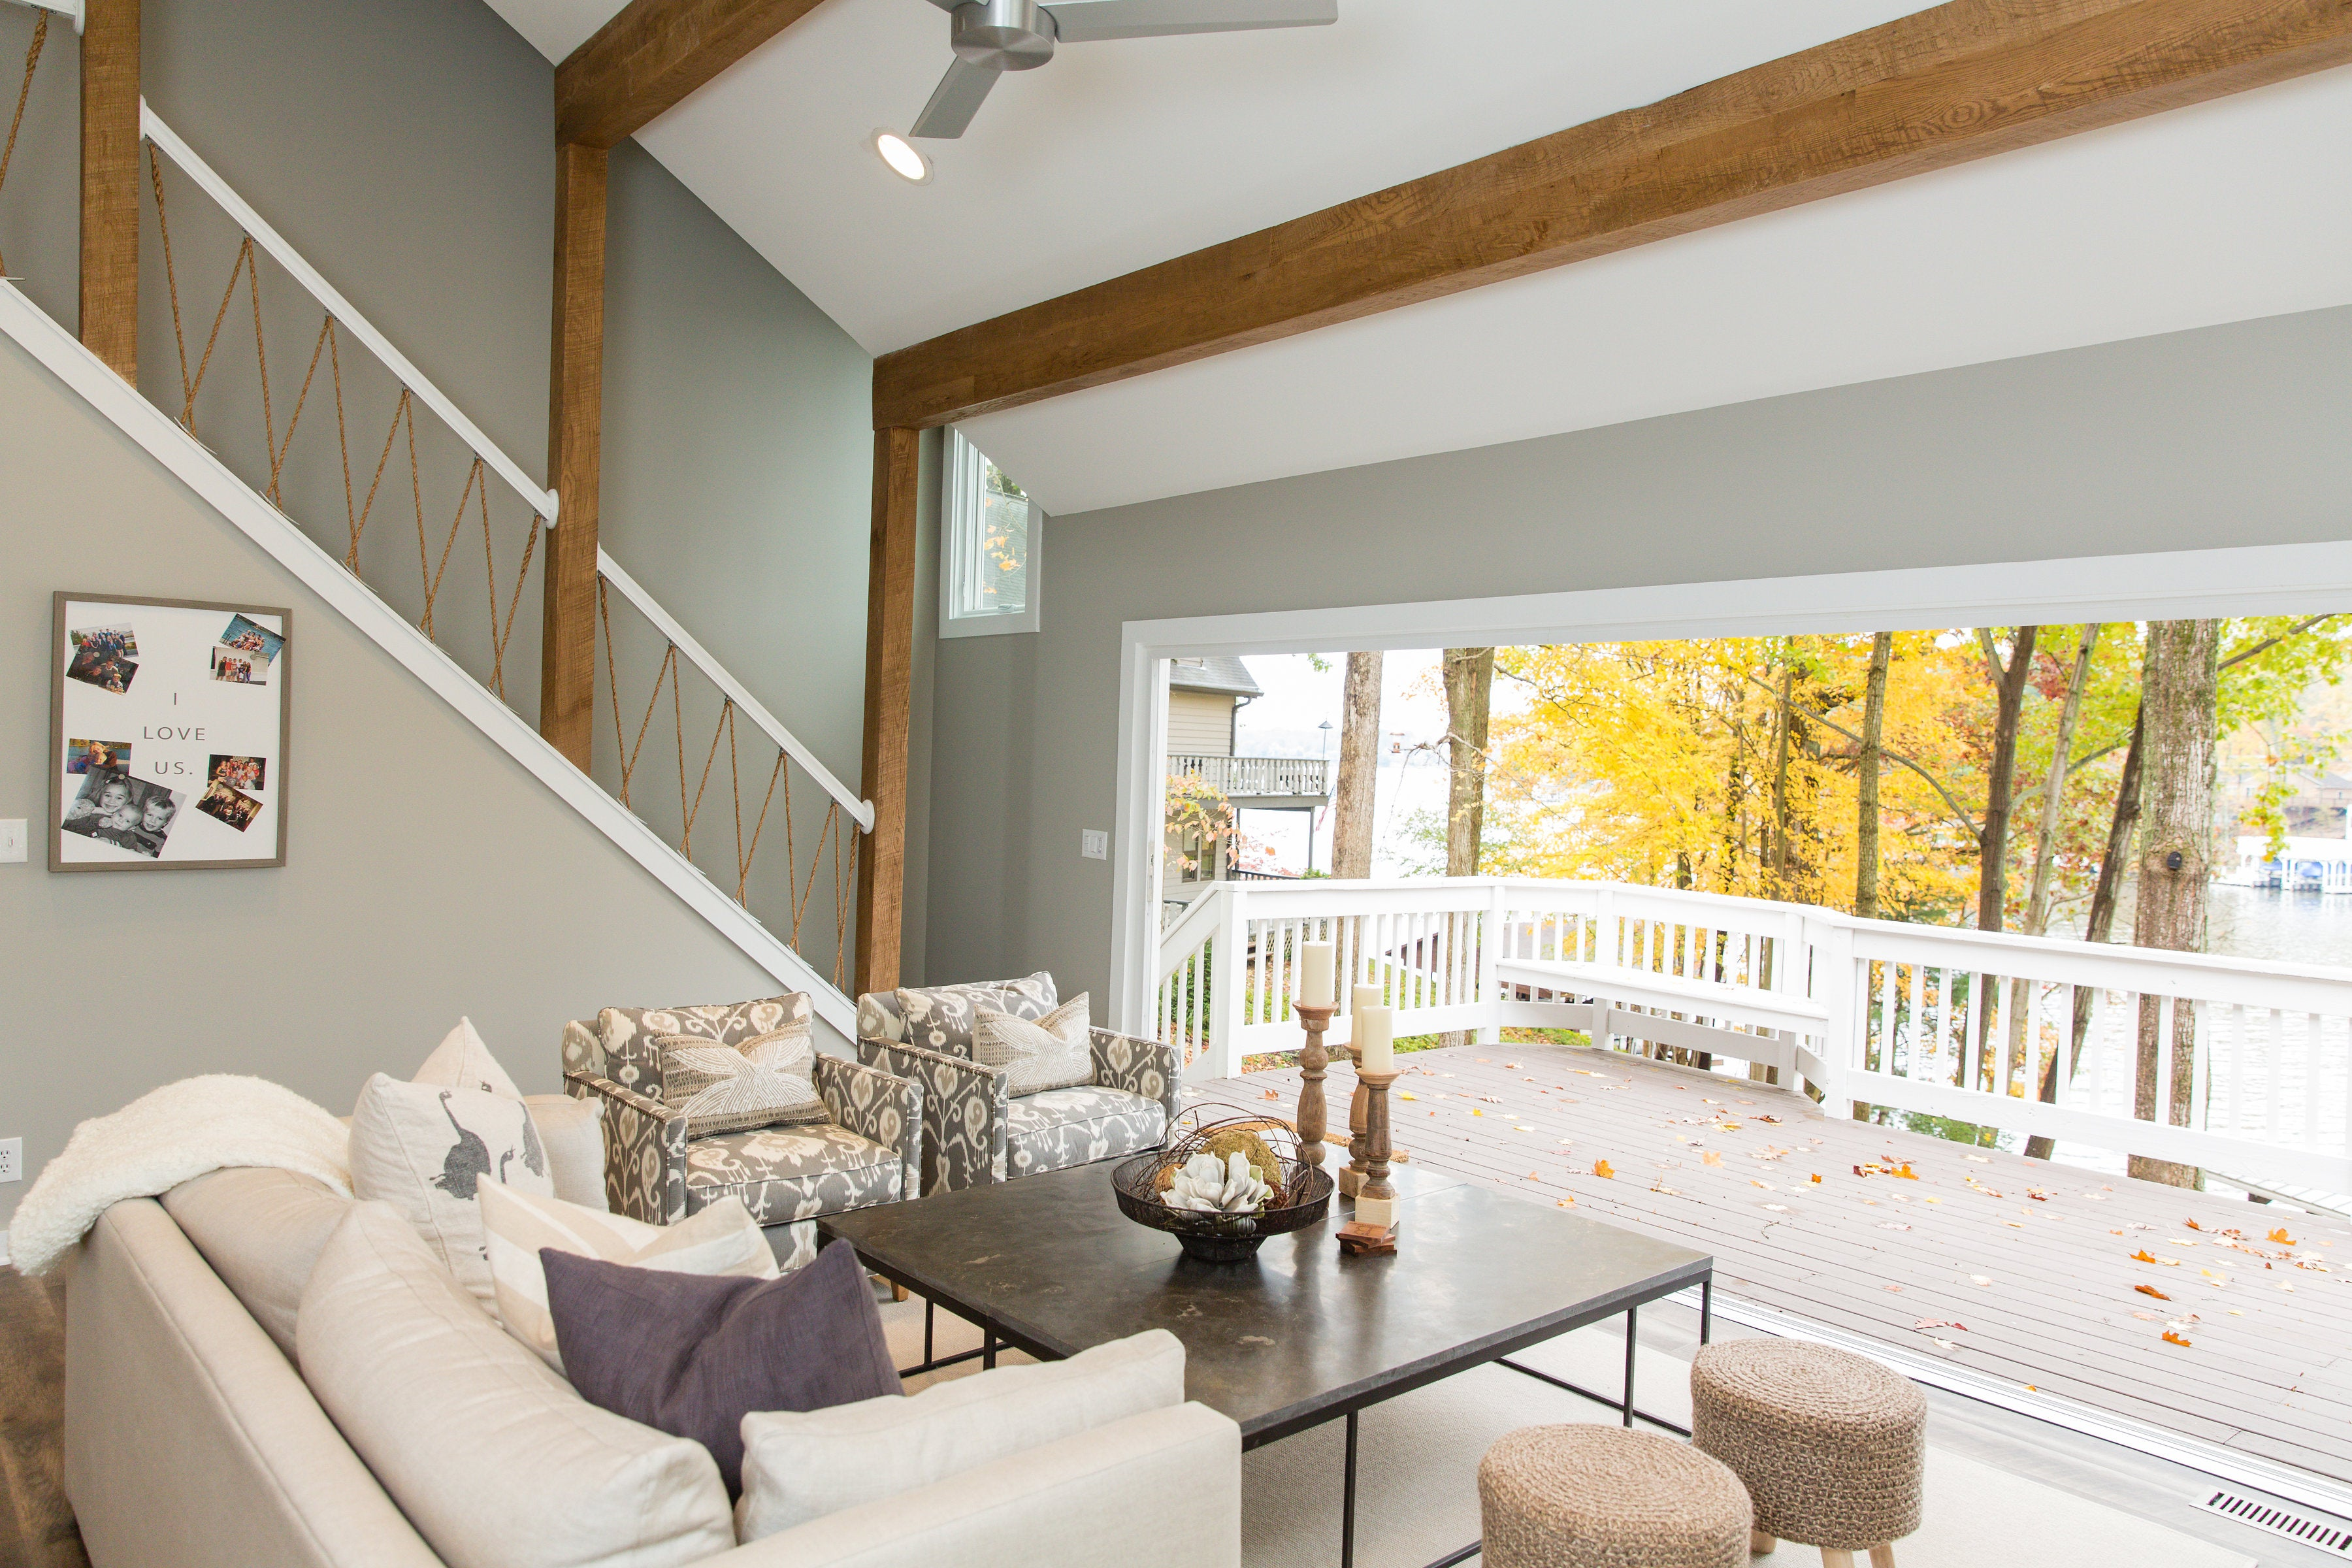 From blueprints to a lake house full of life trove warehouse they purchased this 3 bed1 bath home earlier this year and set out to completely re design it before memorial day with the help of their architect and malvernweather Choice Image